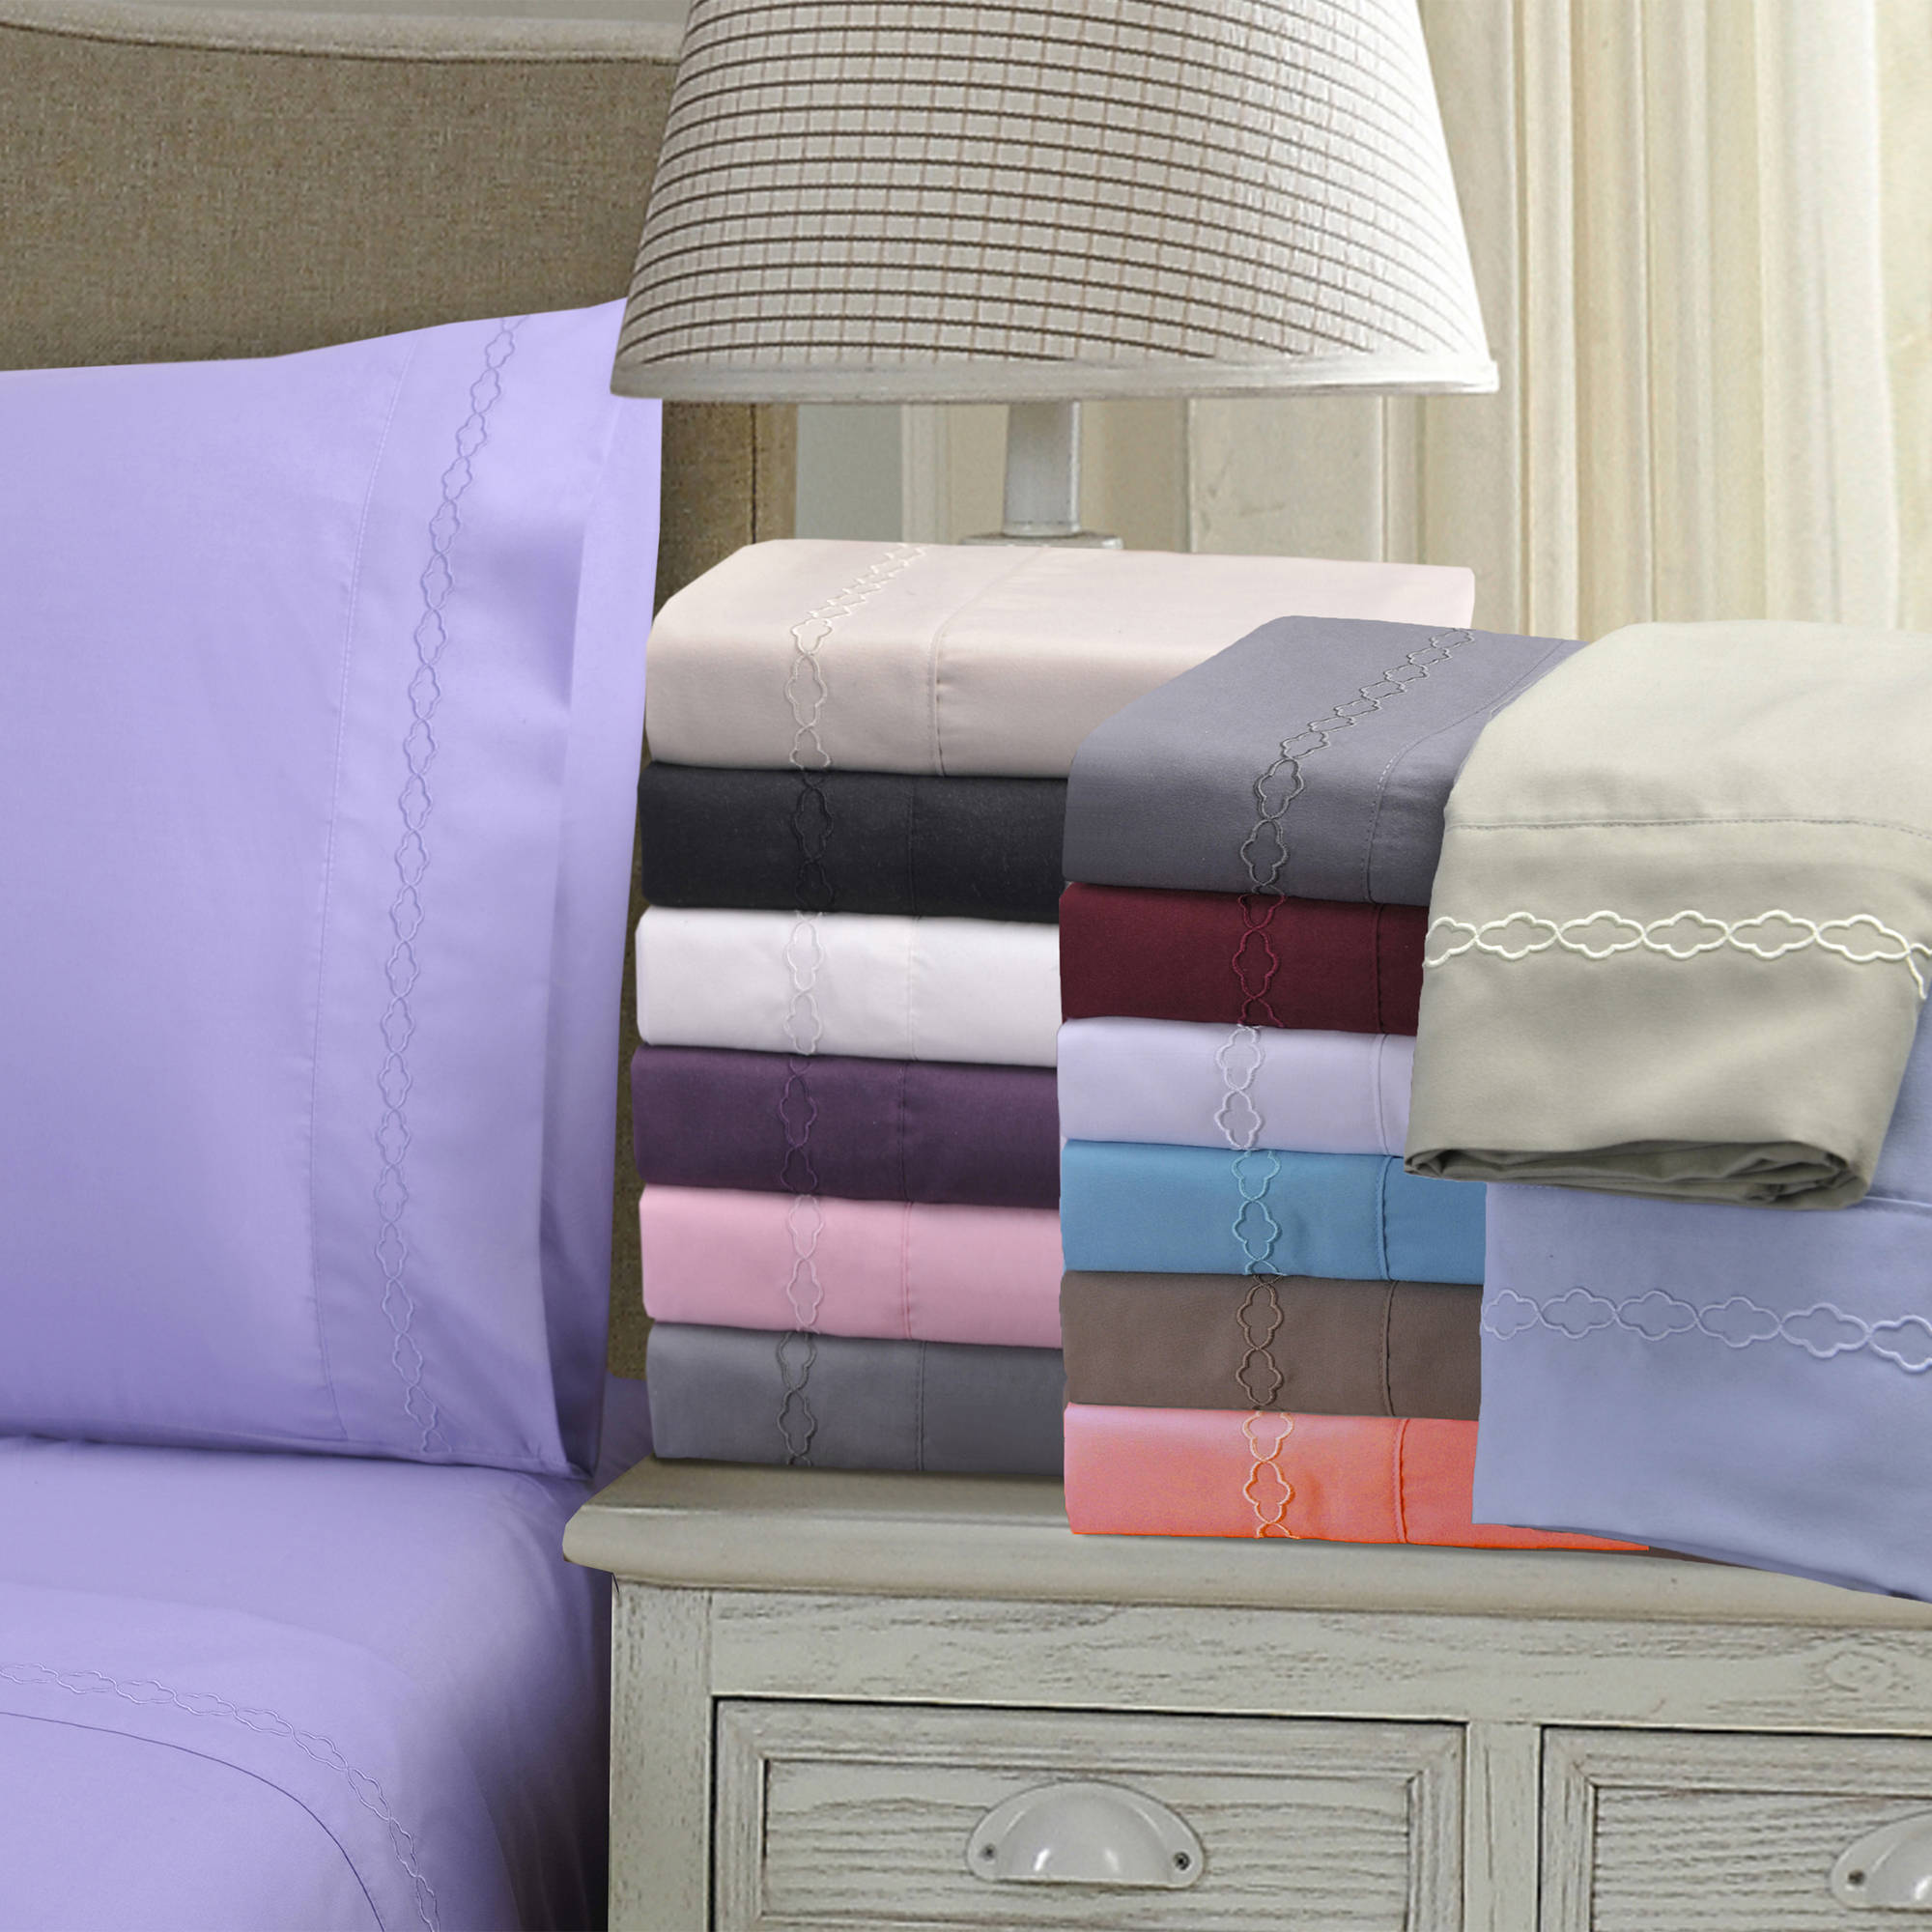 Superior Light Weight and Super Soft Brushed Microfiber, Wrinkle Resistant Pillowcase Set with Cloud Embroidery